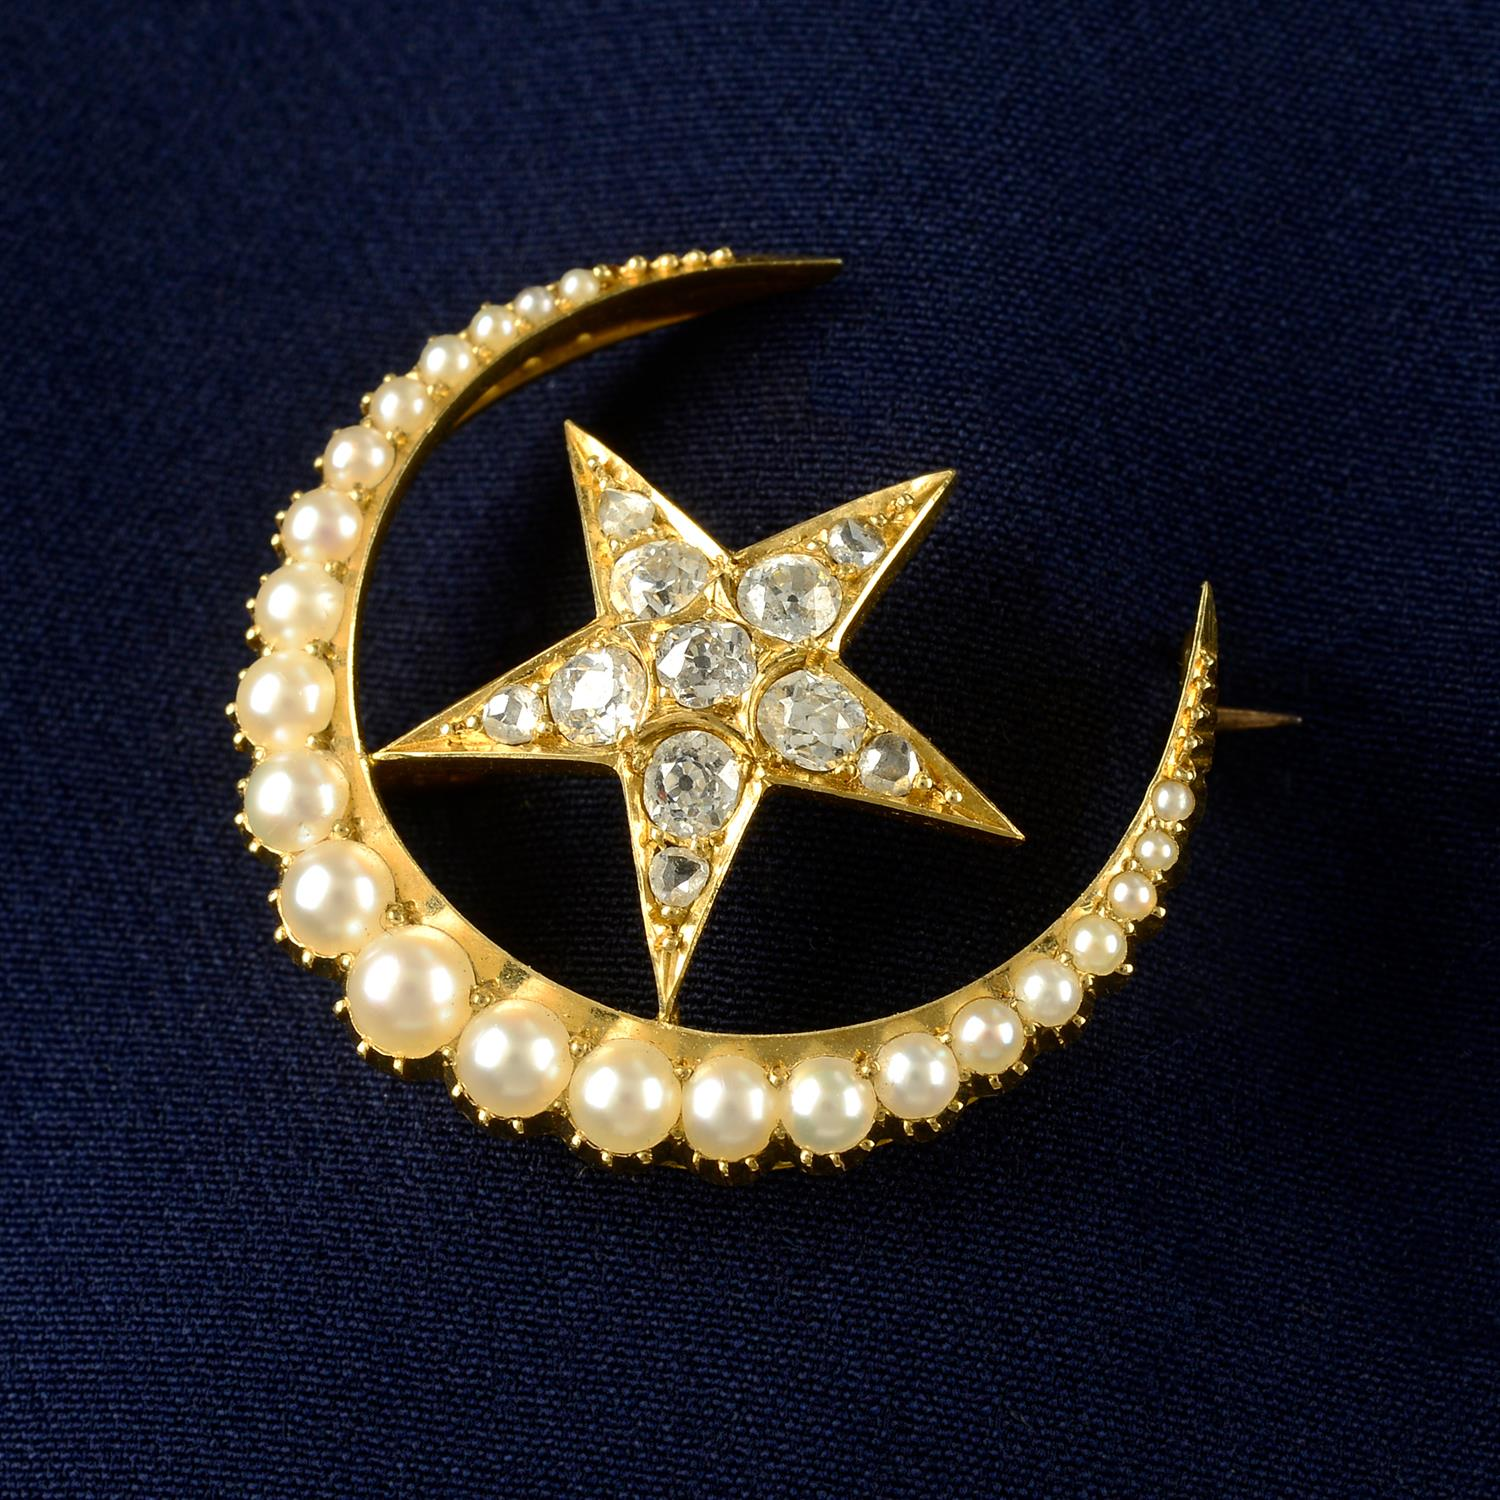 A late Victorian 15ct gold split pearl and old-cut diamond crescent moon and star brooch.